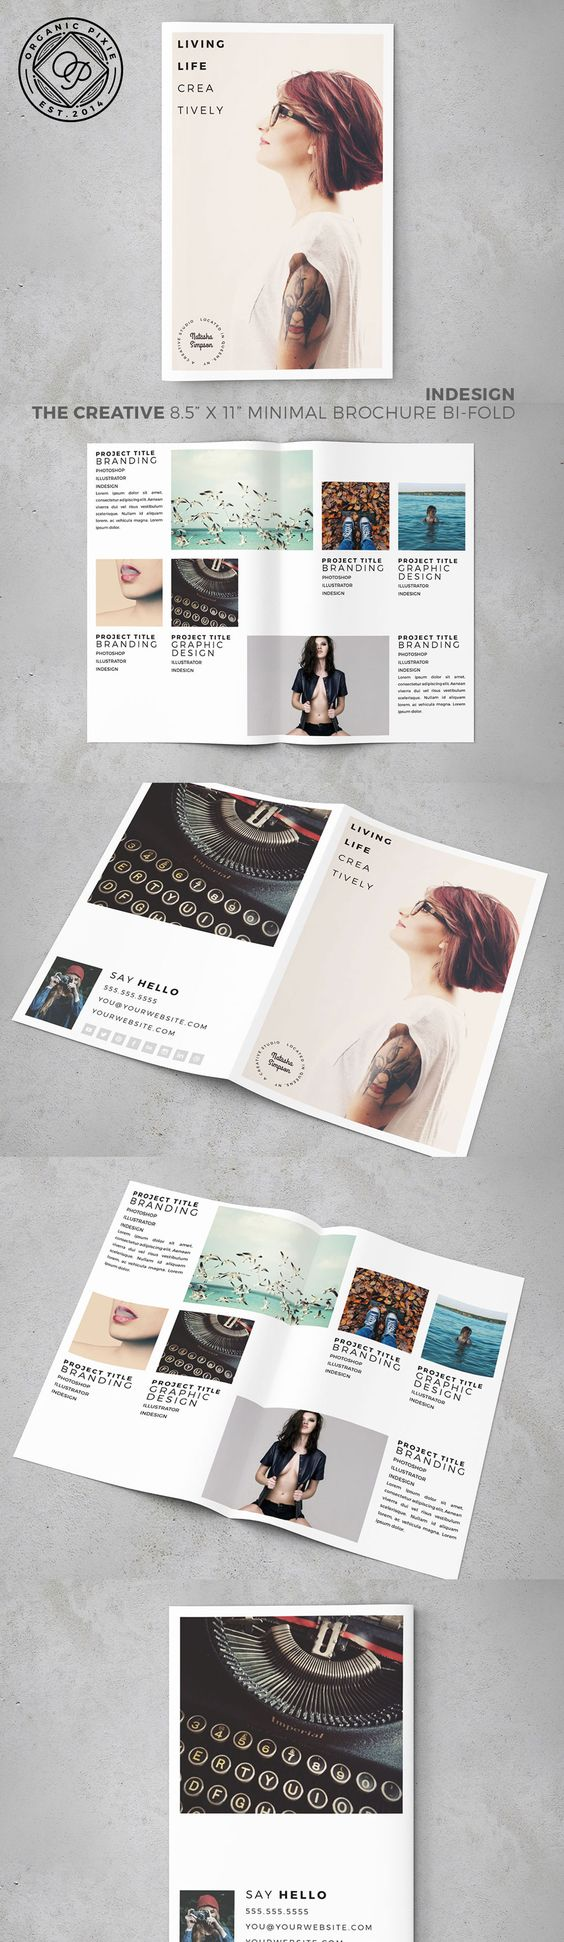 8 5 x 11 brochure template - brochure design brochure design templates and brochures